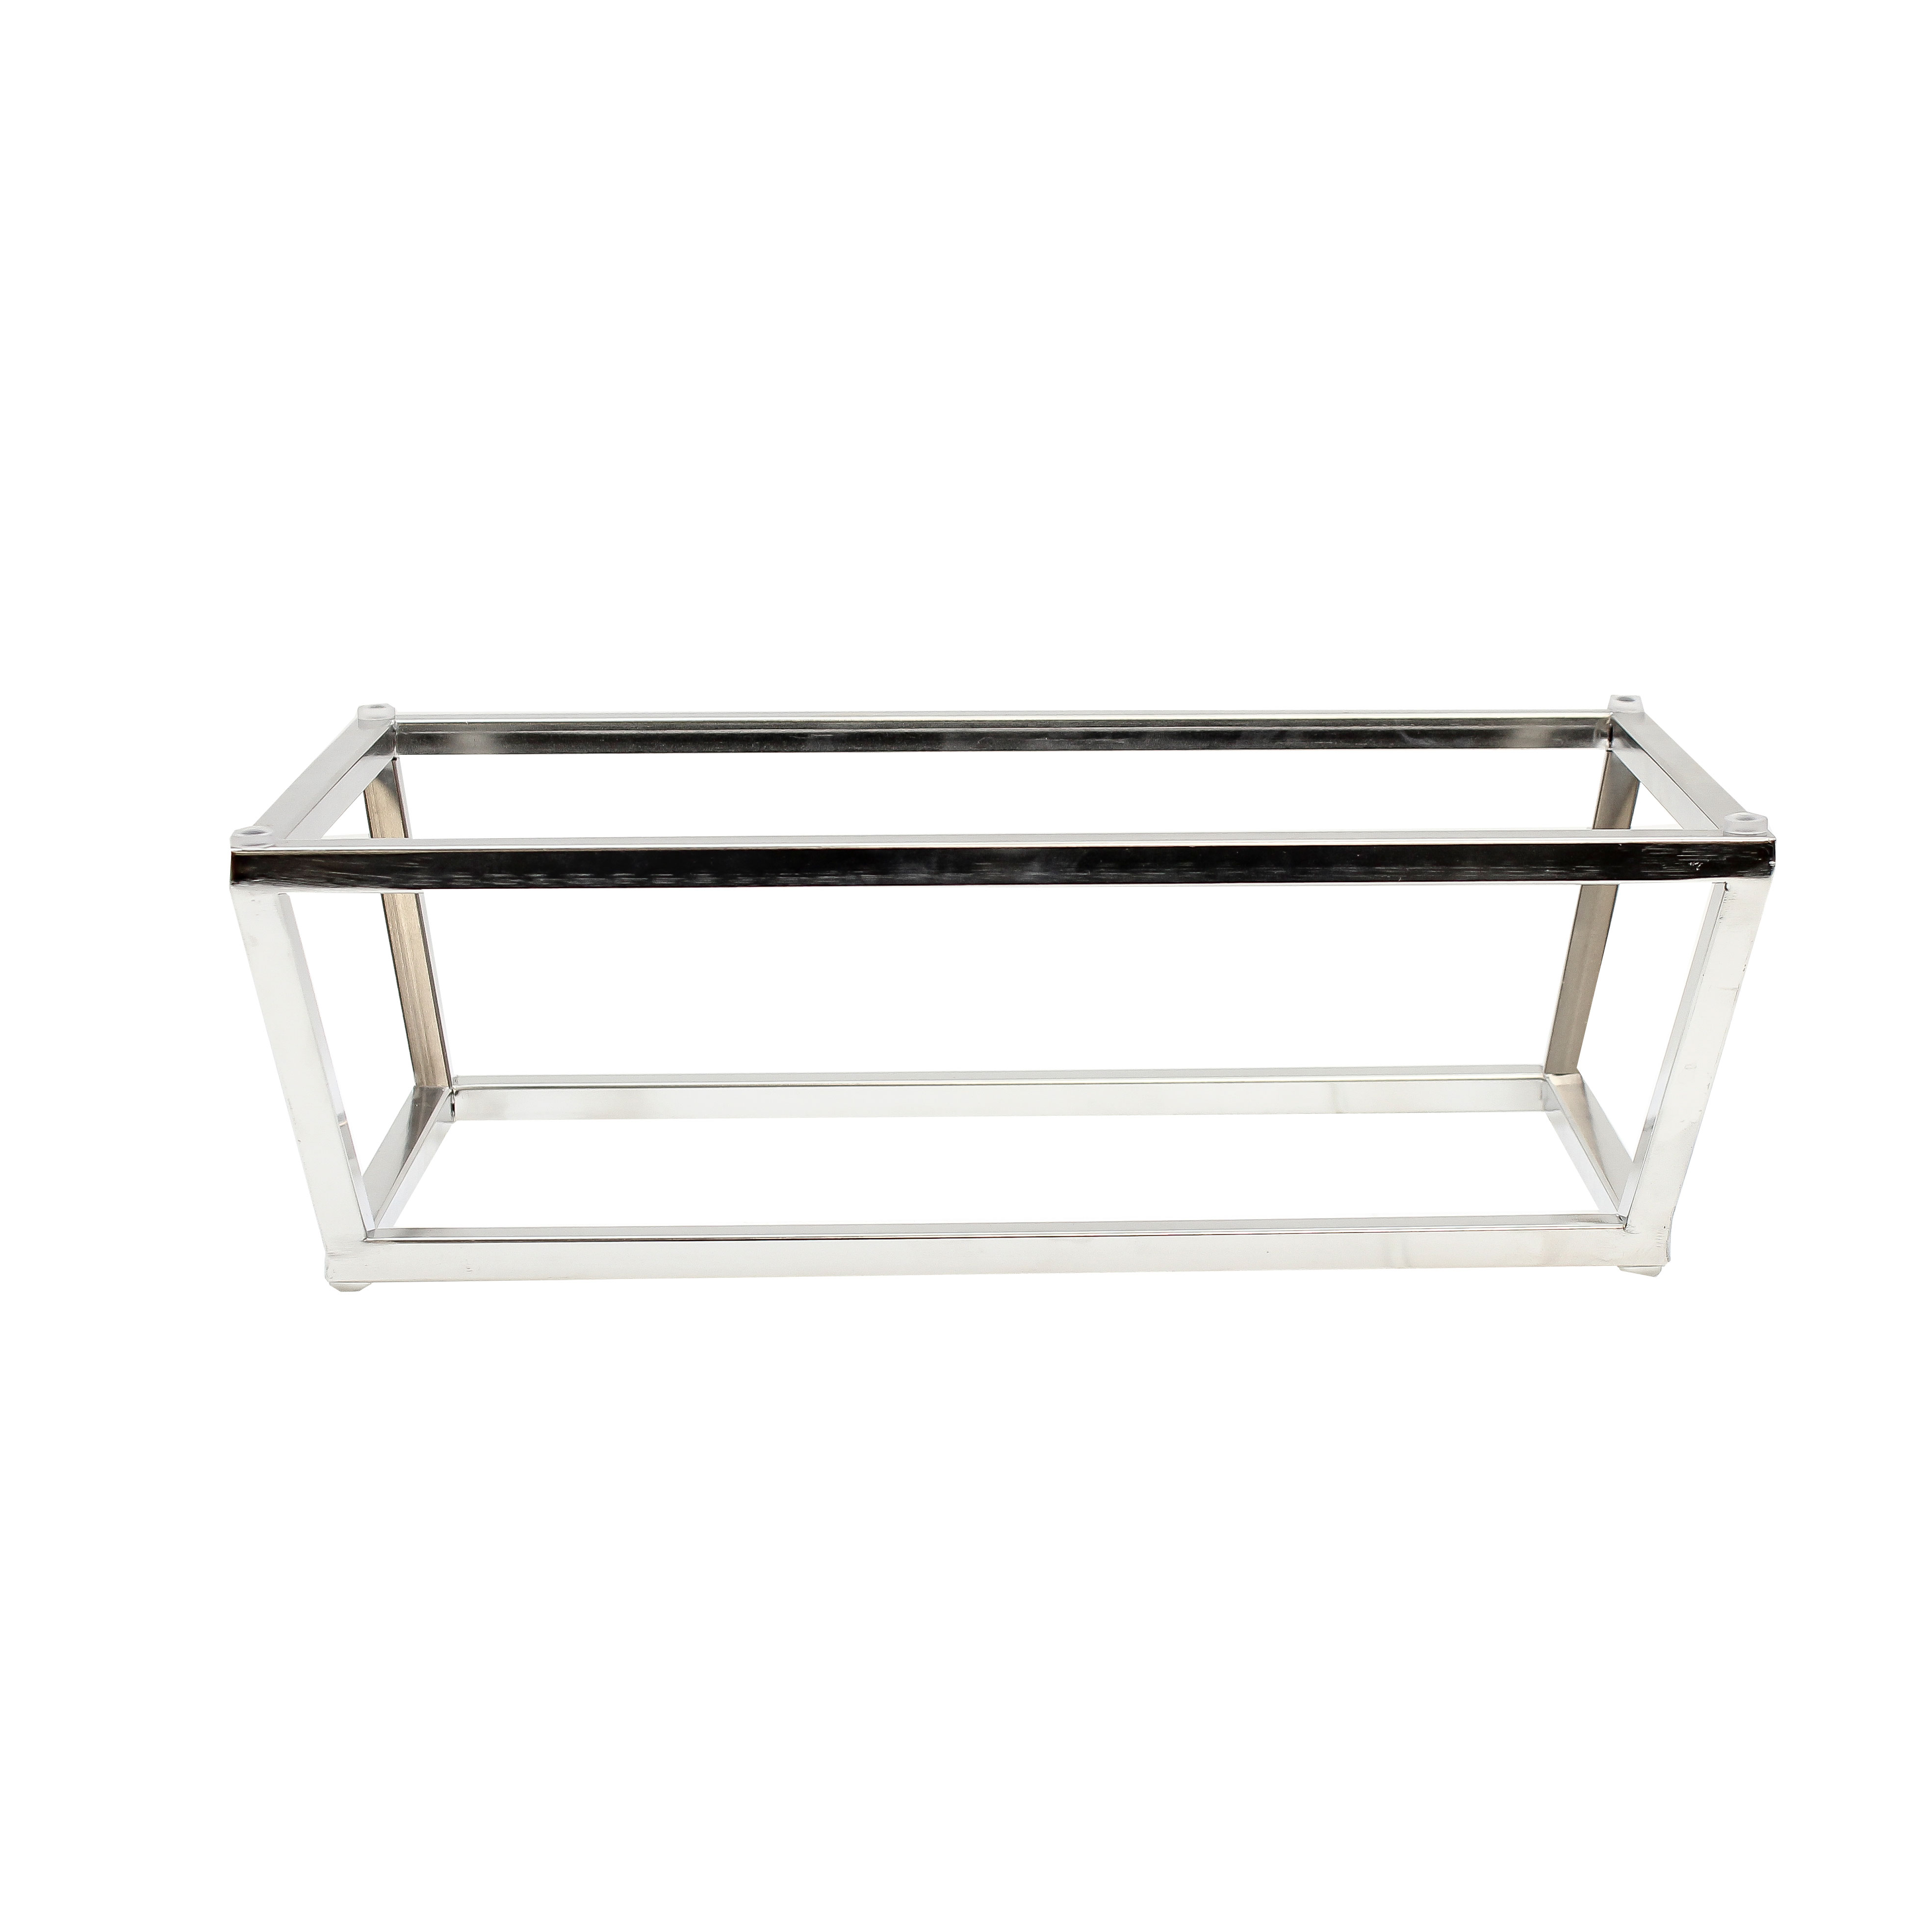 TableCraft Products 21006 display riser, individual